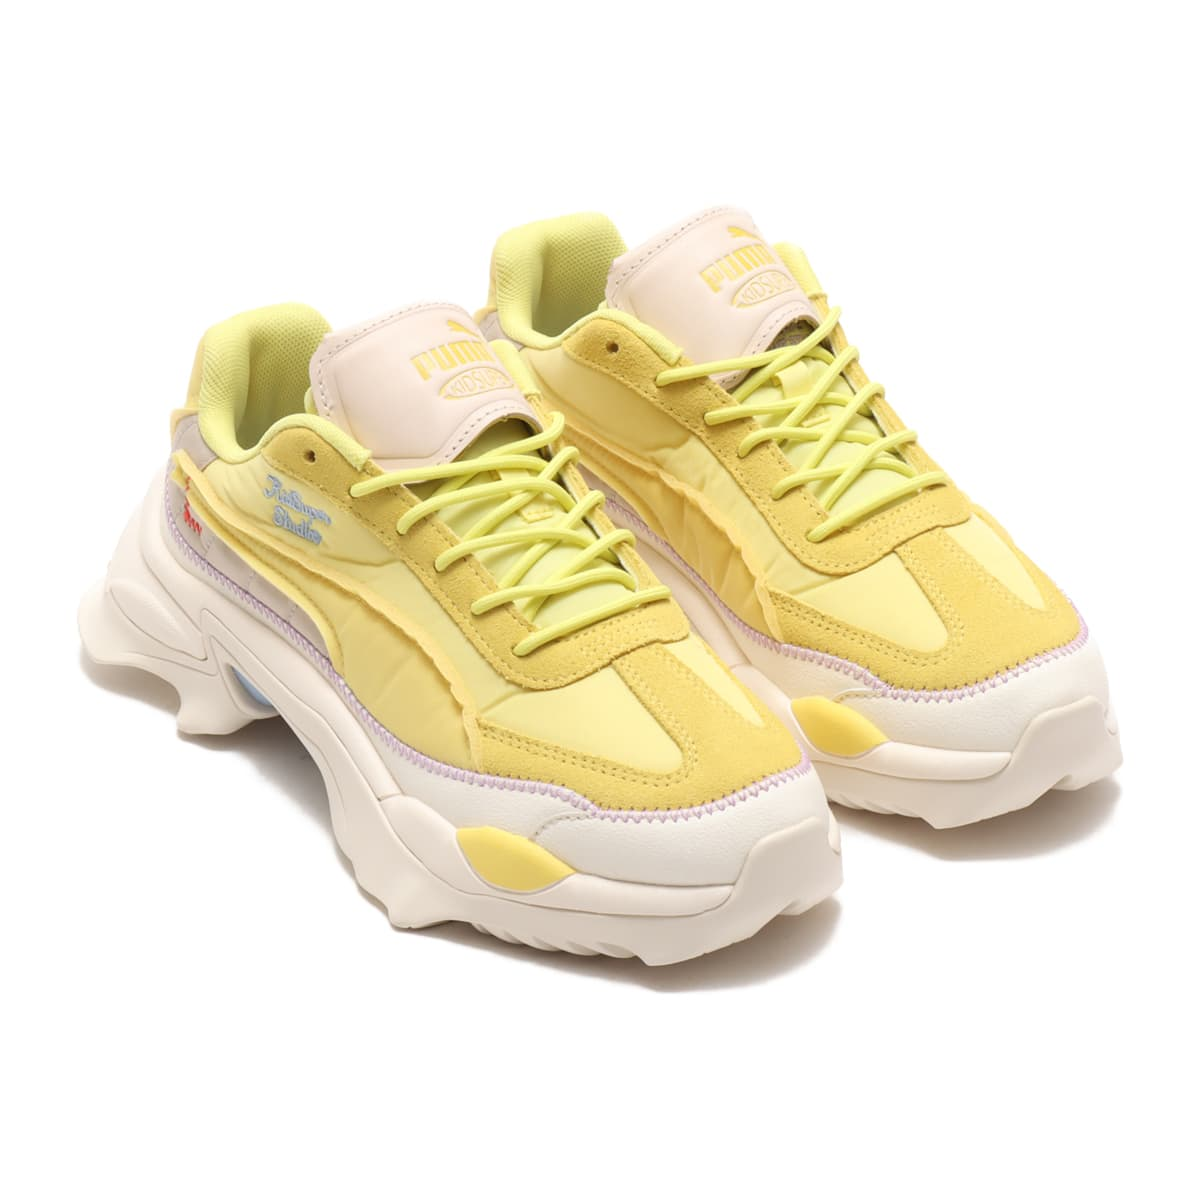 PUMA NITEFOX KIDSUPER LIME/YELLOW 20FA-S_photo_large